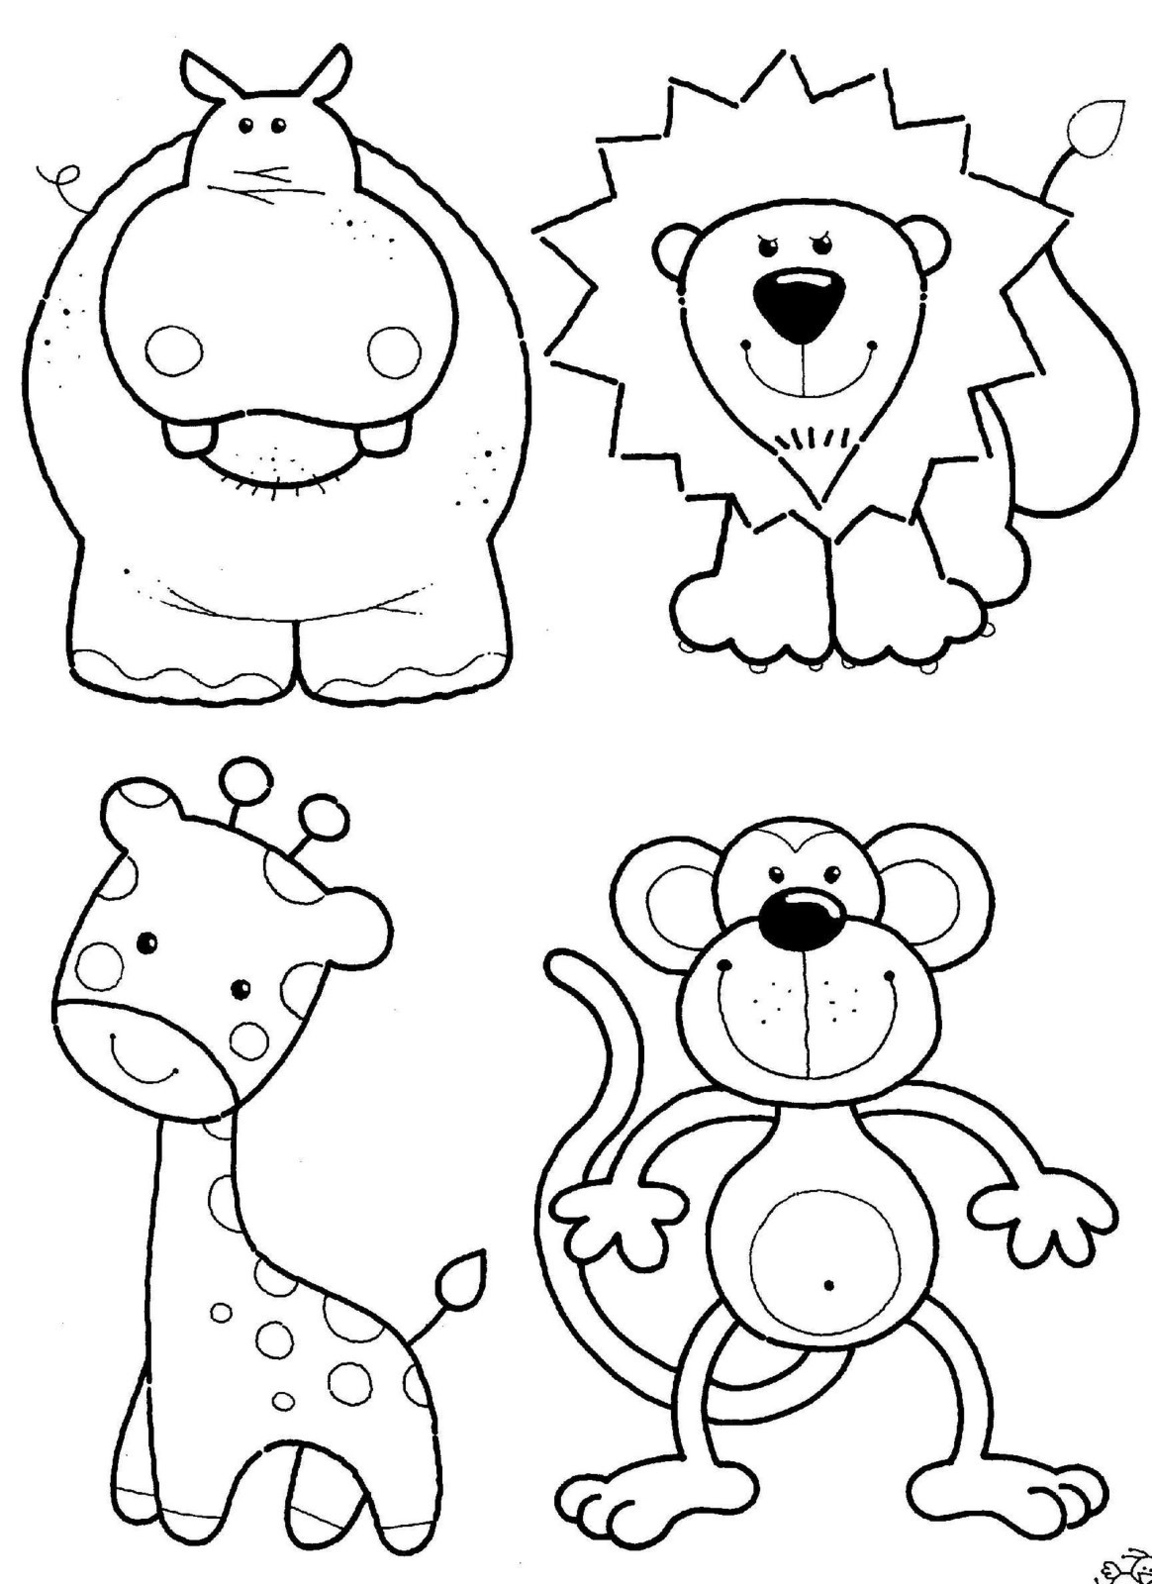 jungle theme coloring pages - photo#4